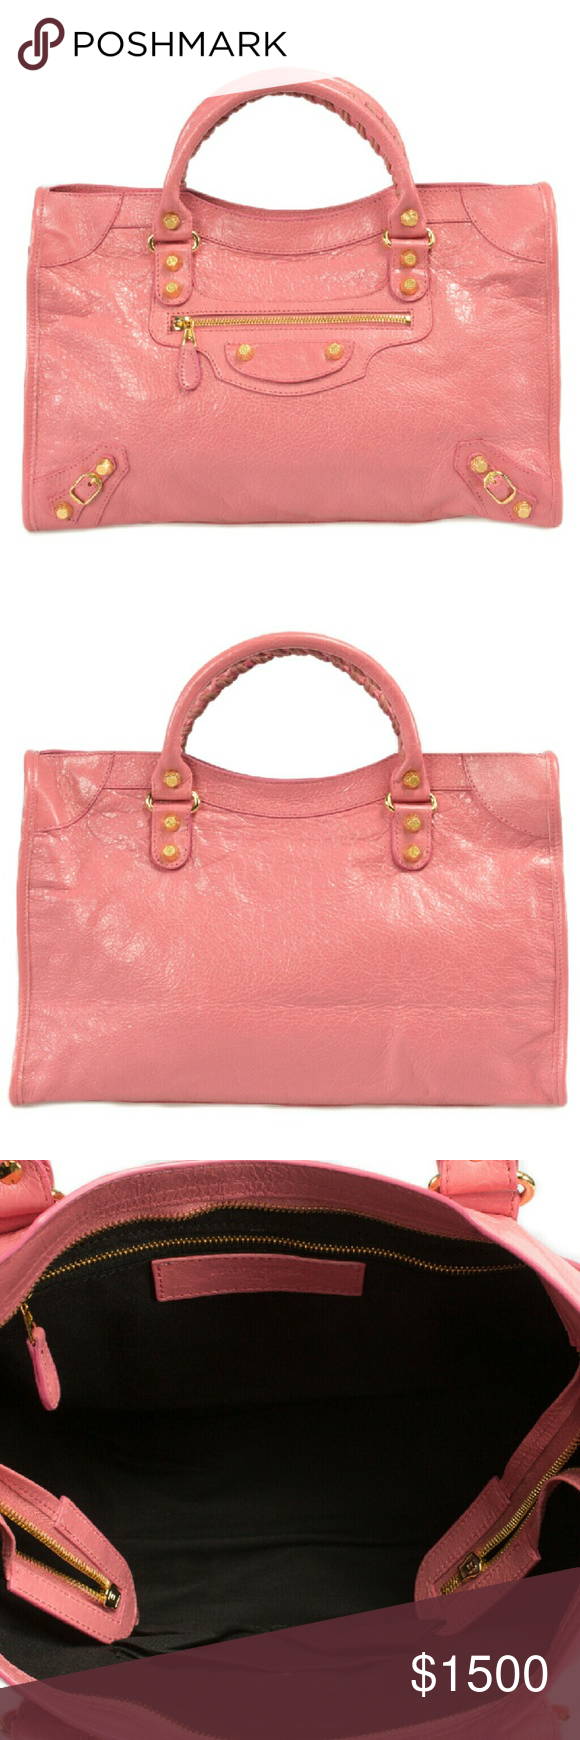 Balenciaga Giant 12 Gold City Leather Bag | Jaipur Superbly crafted in Italy from soft and supple lambskin  you can now step into the lap of luxury with this rose jaipur Balenciaga Giant 12 Gold City Bag  which is ideal when you require a tote which is easy to carry and has ample room for your personal belongings. This bag features one exterior and one interior zippered pocket  two smaller interior pouches and a top zipper closure for the main compartment  which is lined with black fabric…